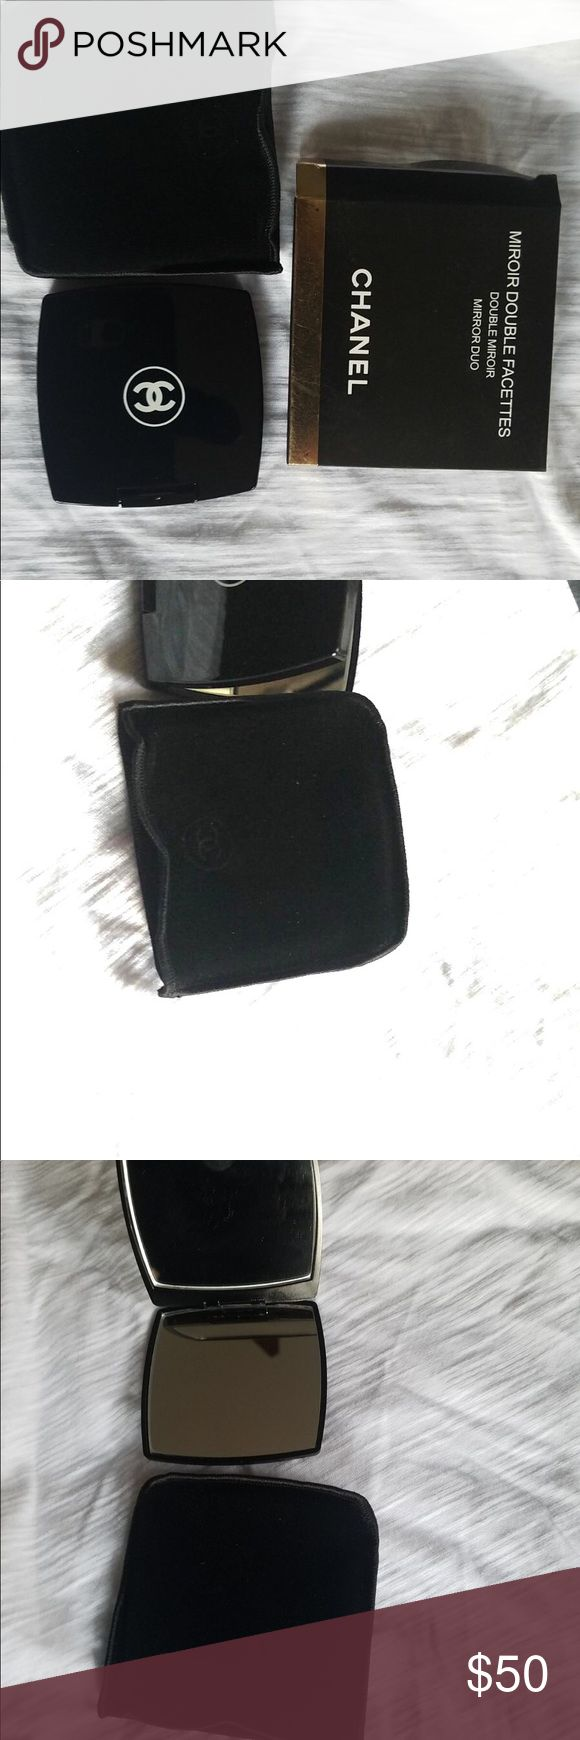 Vip chanel compact mirror Double sided mirror Brand new and never used  Authentic vip gift item (does not come with dust bag or hologram authentication card because this is a VIP gift given by Chanel beauty & fragrances after buying a certain amount $$) CHANEL Makeup Brushes & Tools